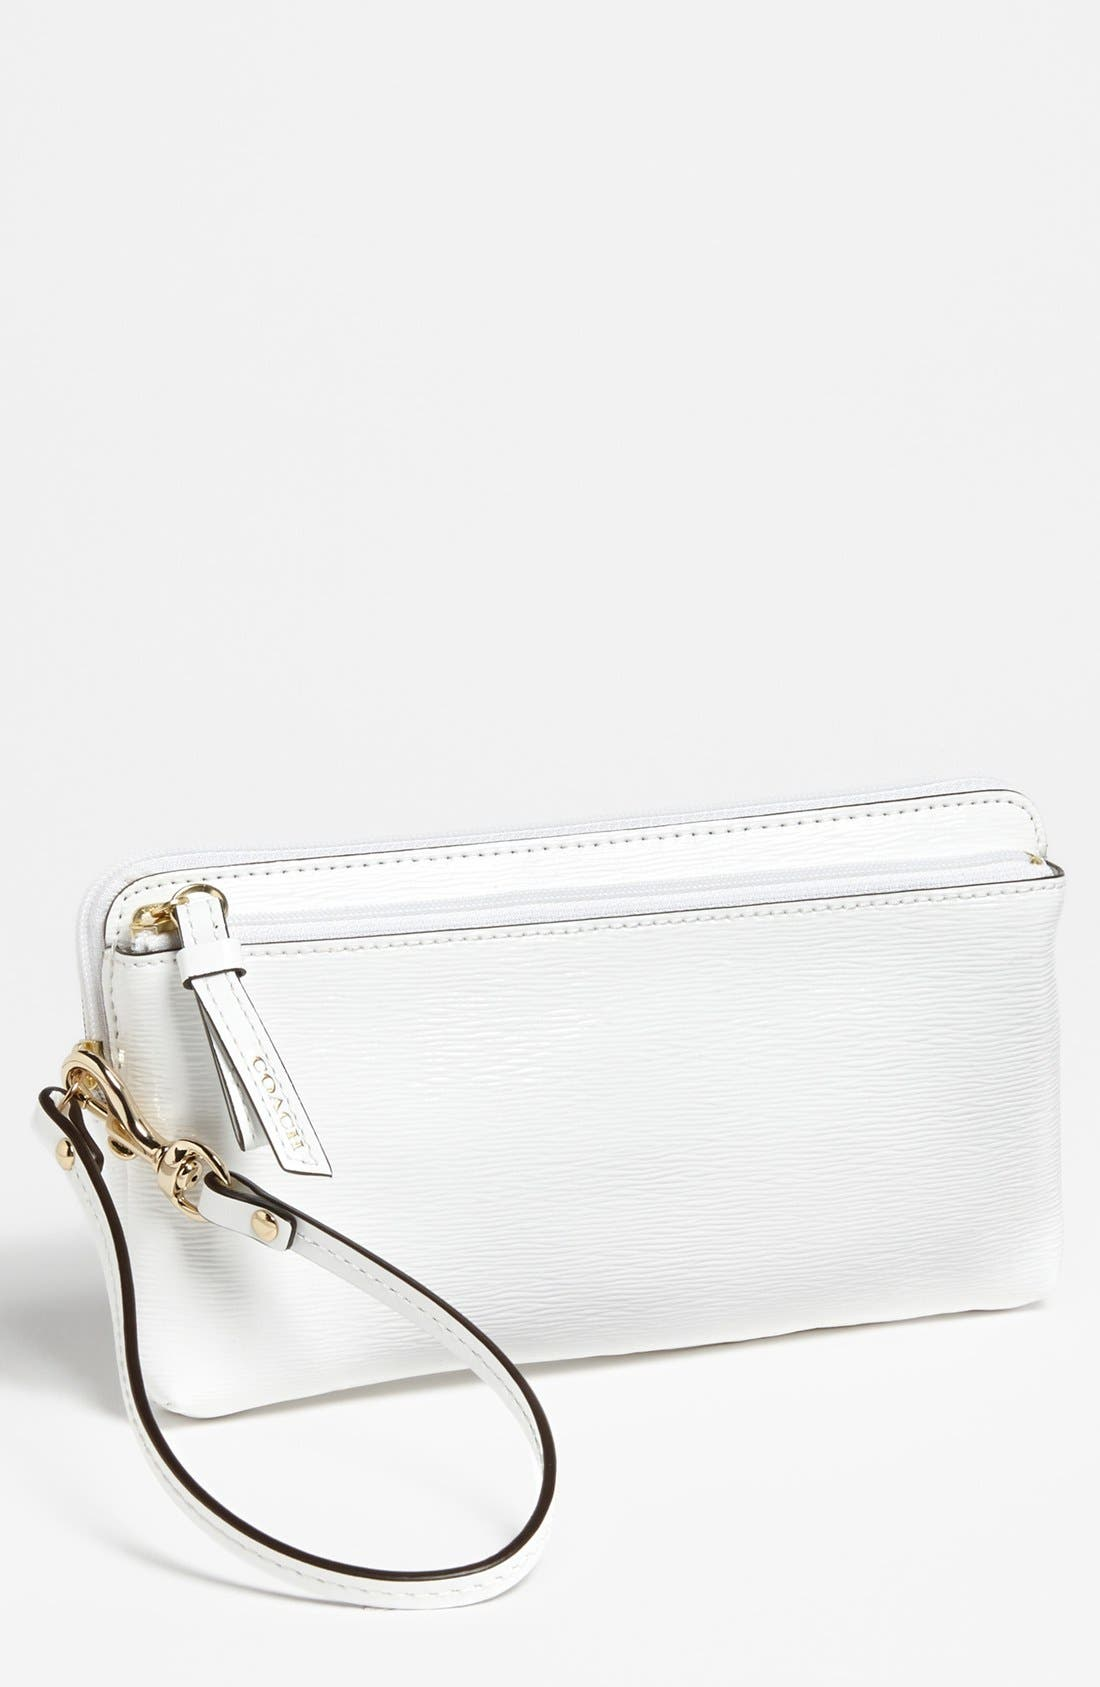 Alternate Image 1 Selected - COACH 'Poppy' Textured Patent Leather Wallet